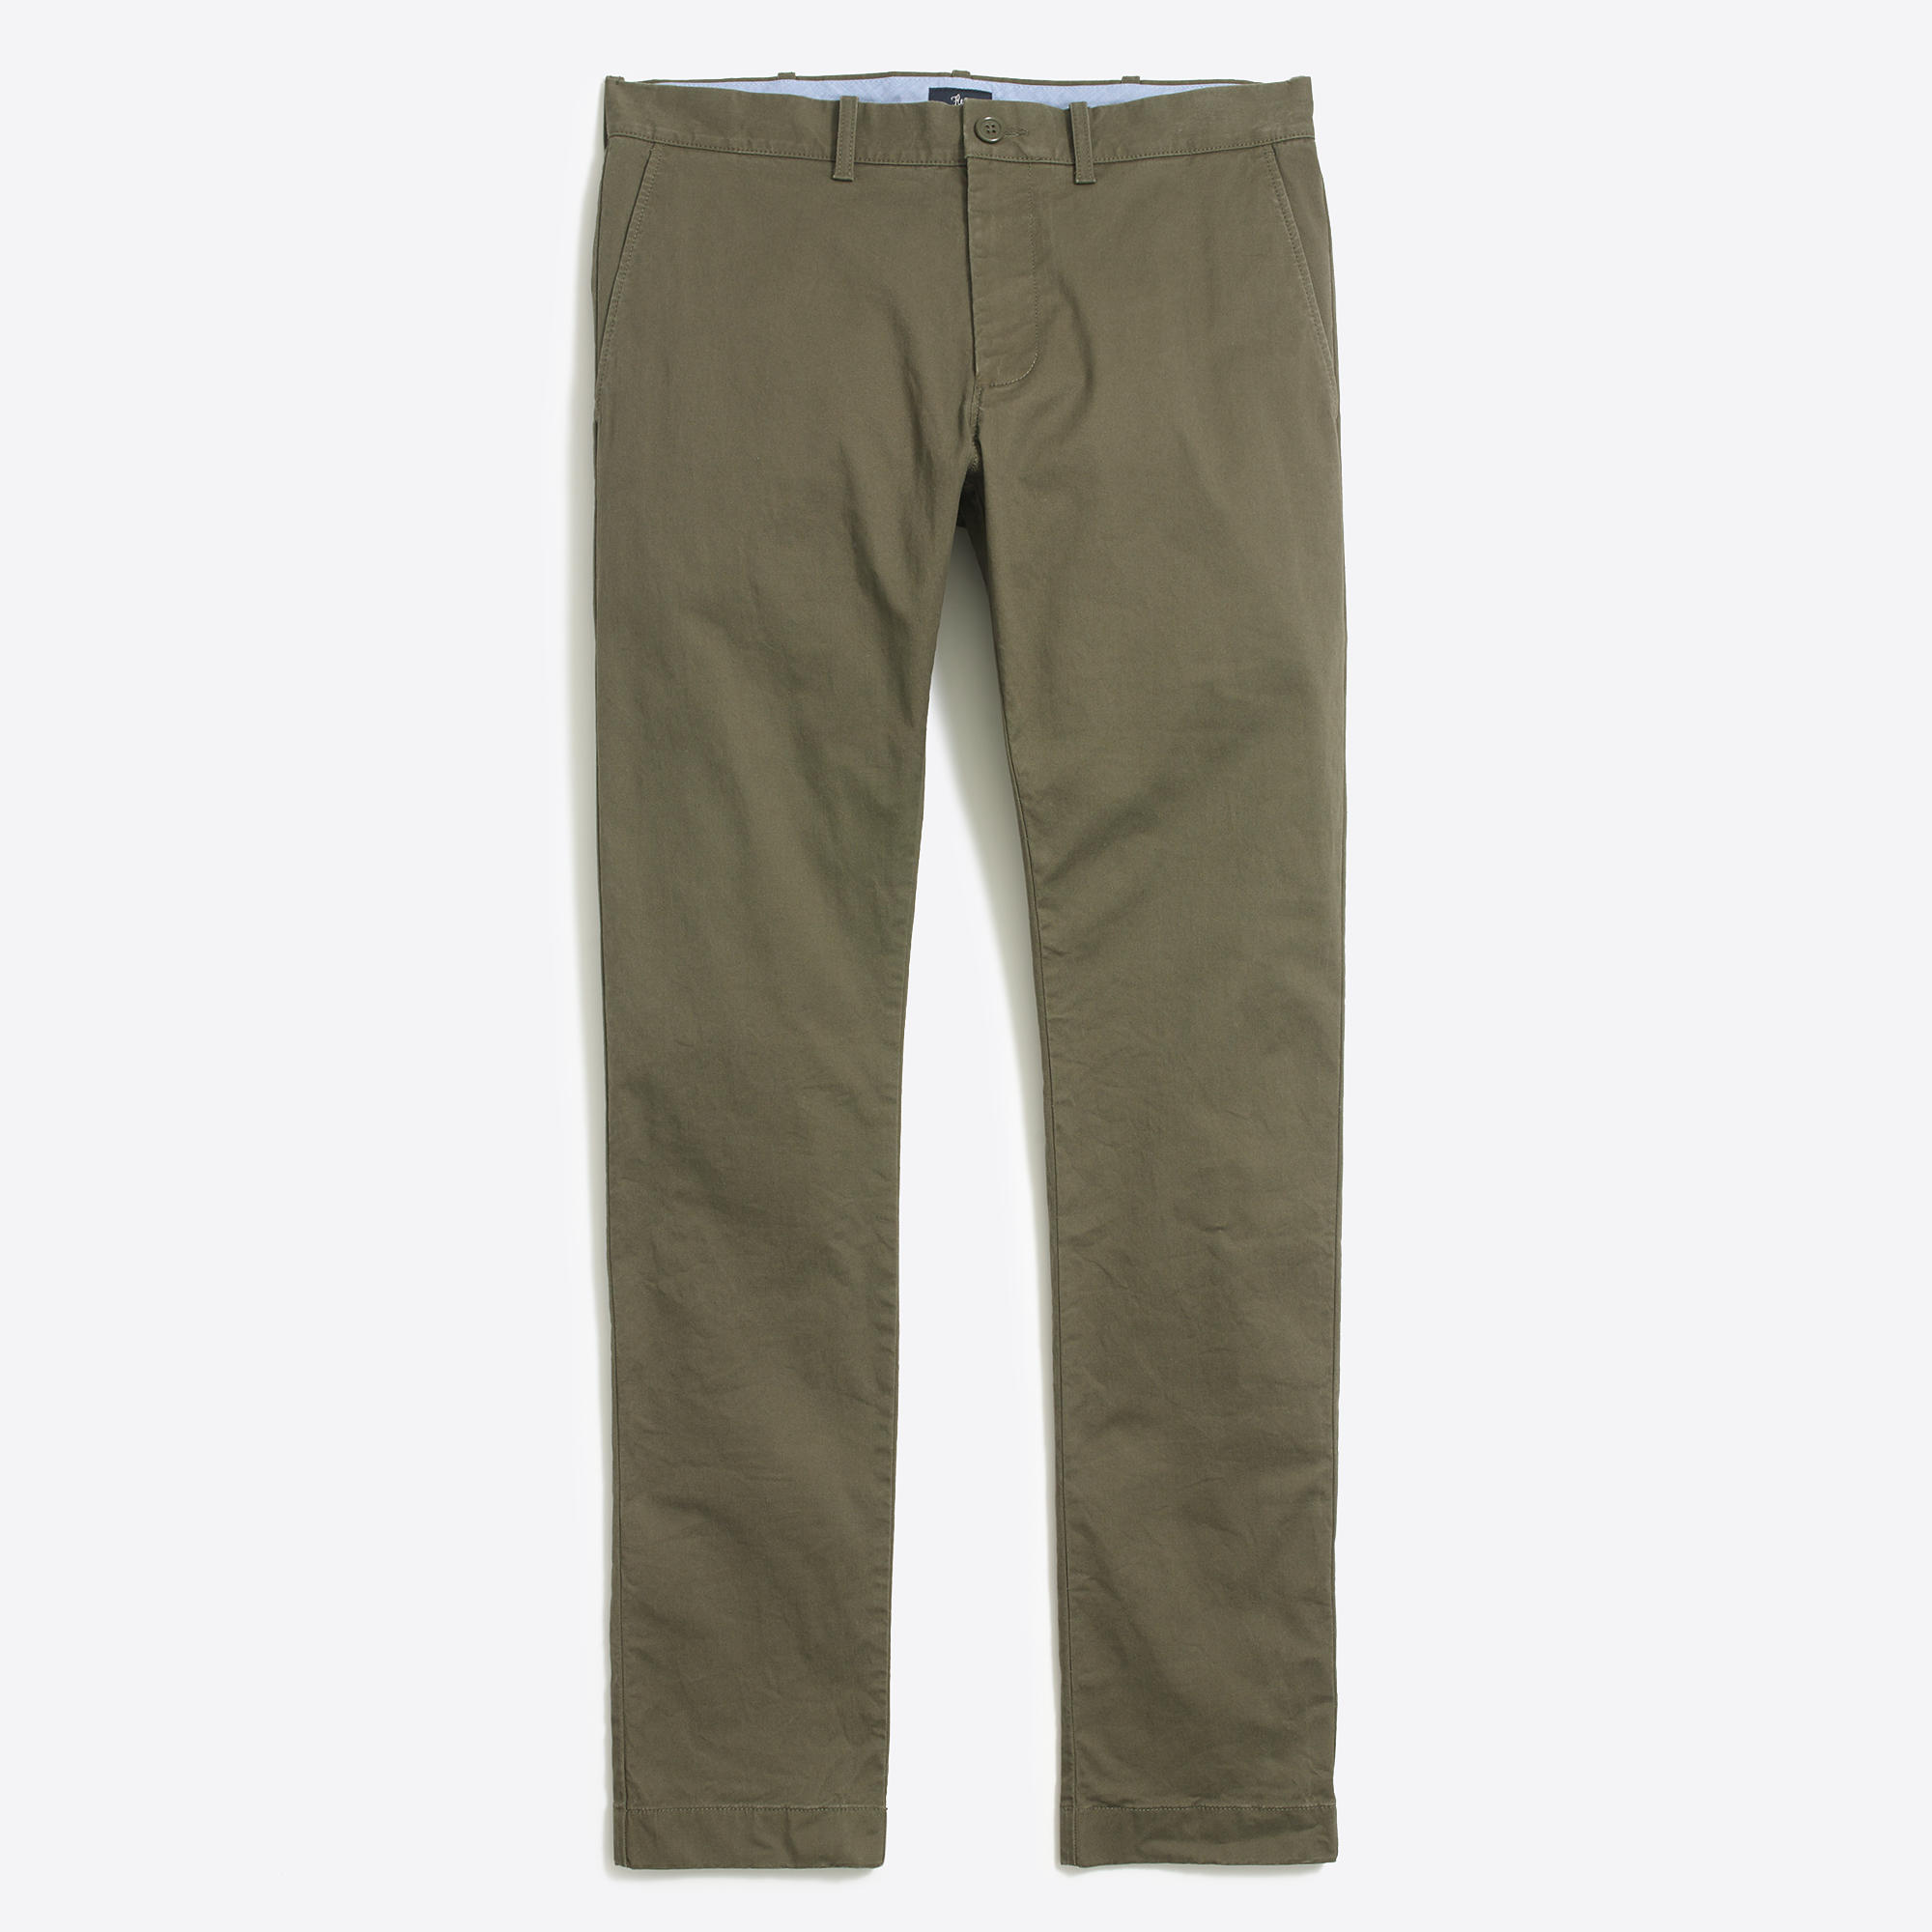 Slim-fit chino featuring slash pockets at front and welt pockets at back. Plaid&Plain Men's Slim Fit Stretch Casual Khaki Pants Cropped Chinos Flood Pants. by Plaid&Plain. $ $ 19 99 Prime. FREE Shipping on eligible orders. Some sizes/colors are Prime eligible. 4 out of 5 stars See Details.